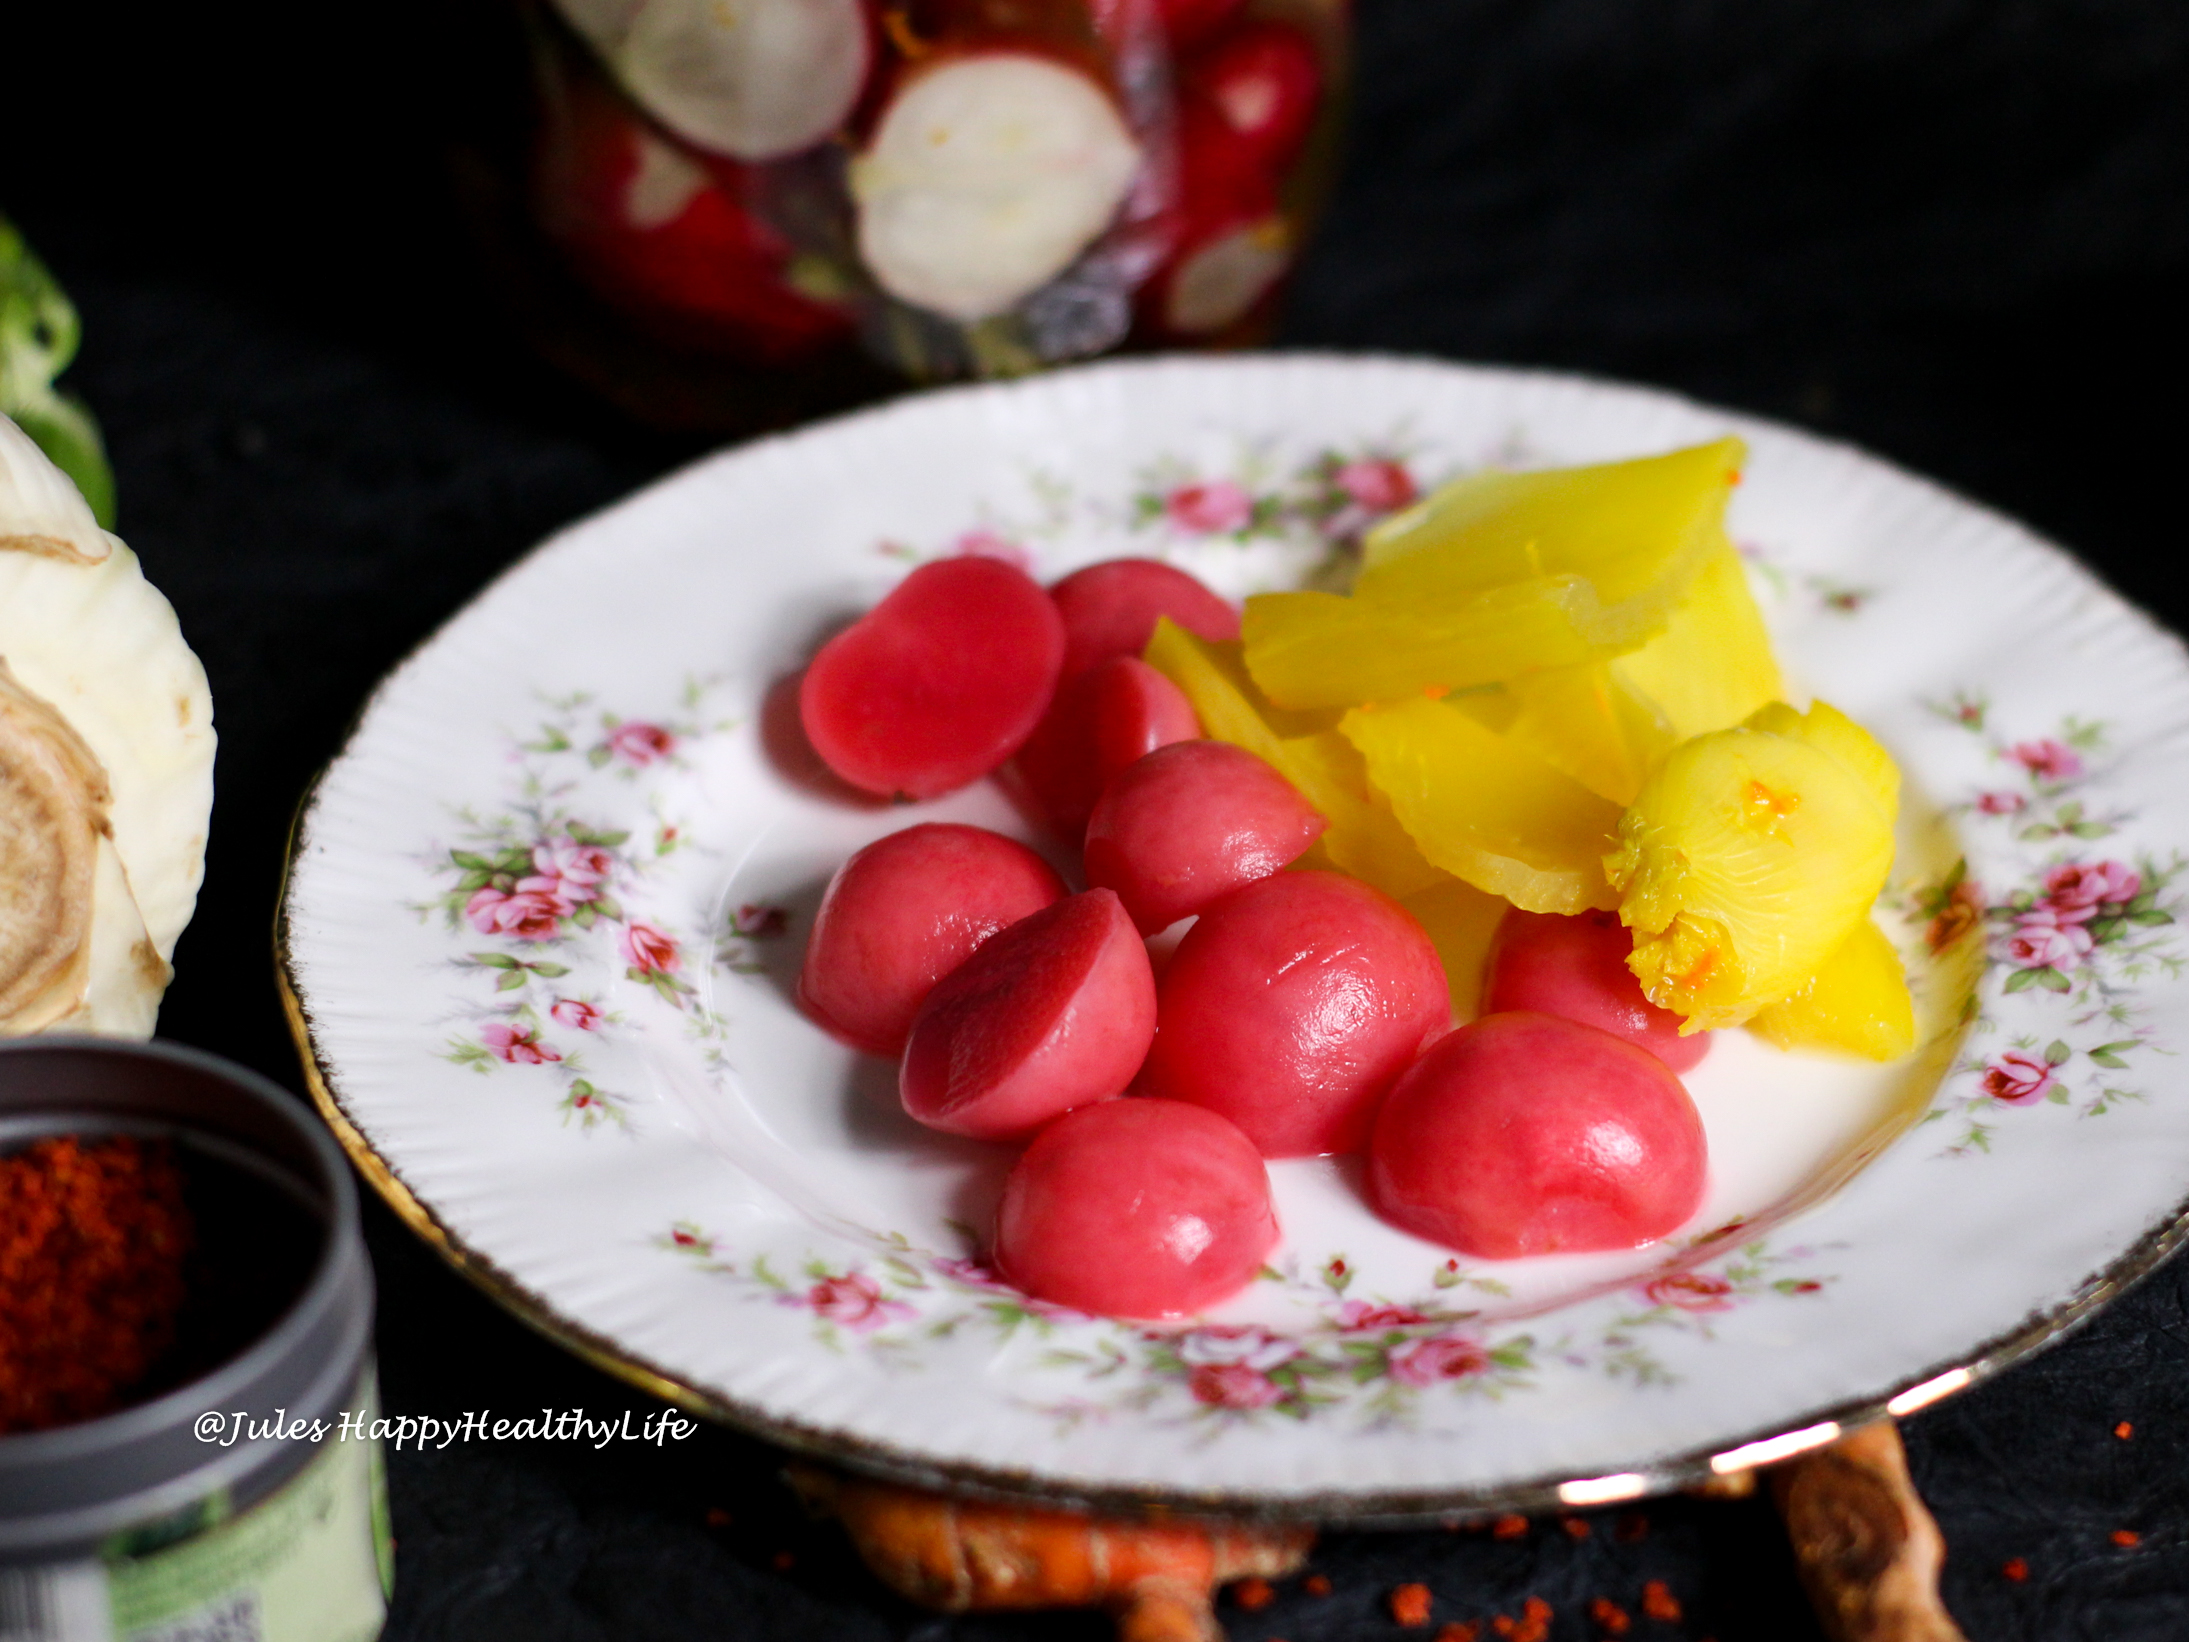 Healthy probiotika for your gut health with fermented vegetables with turmeric & chili